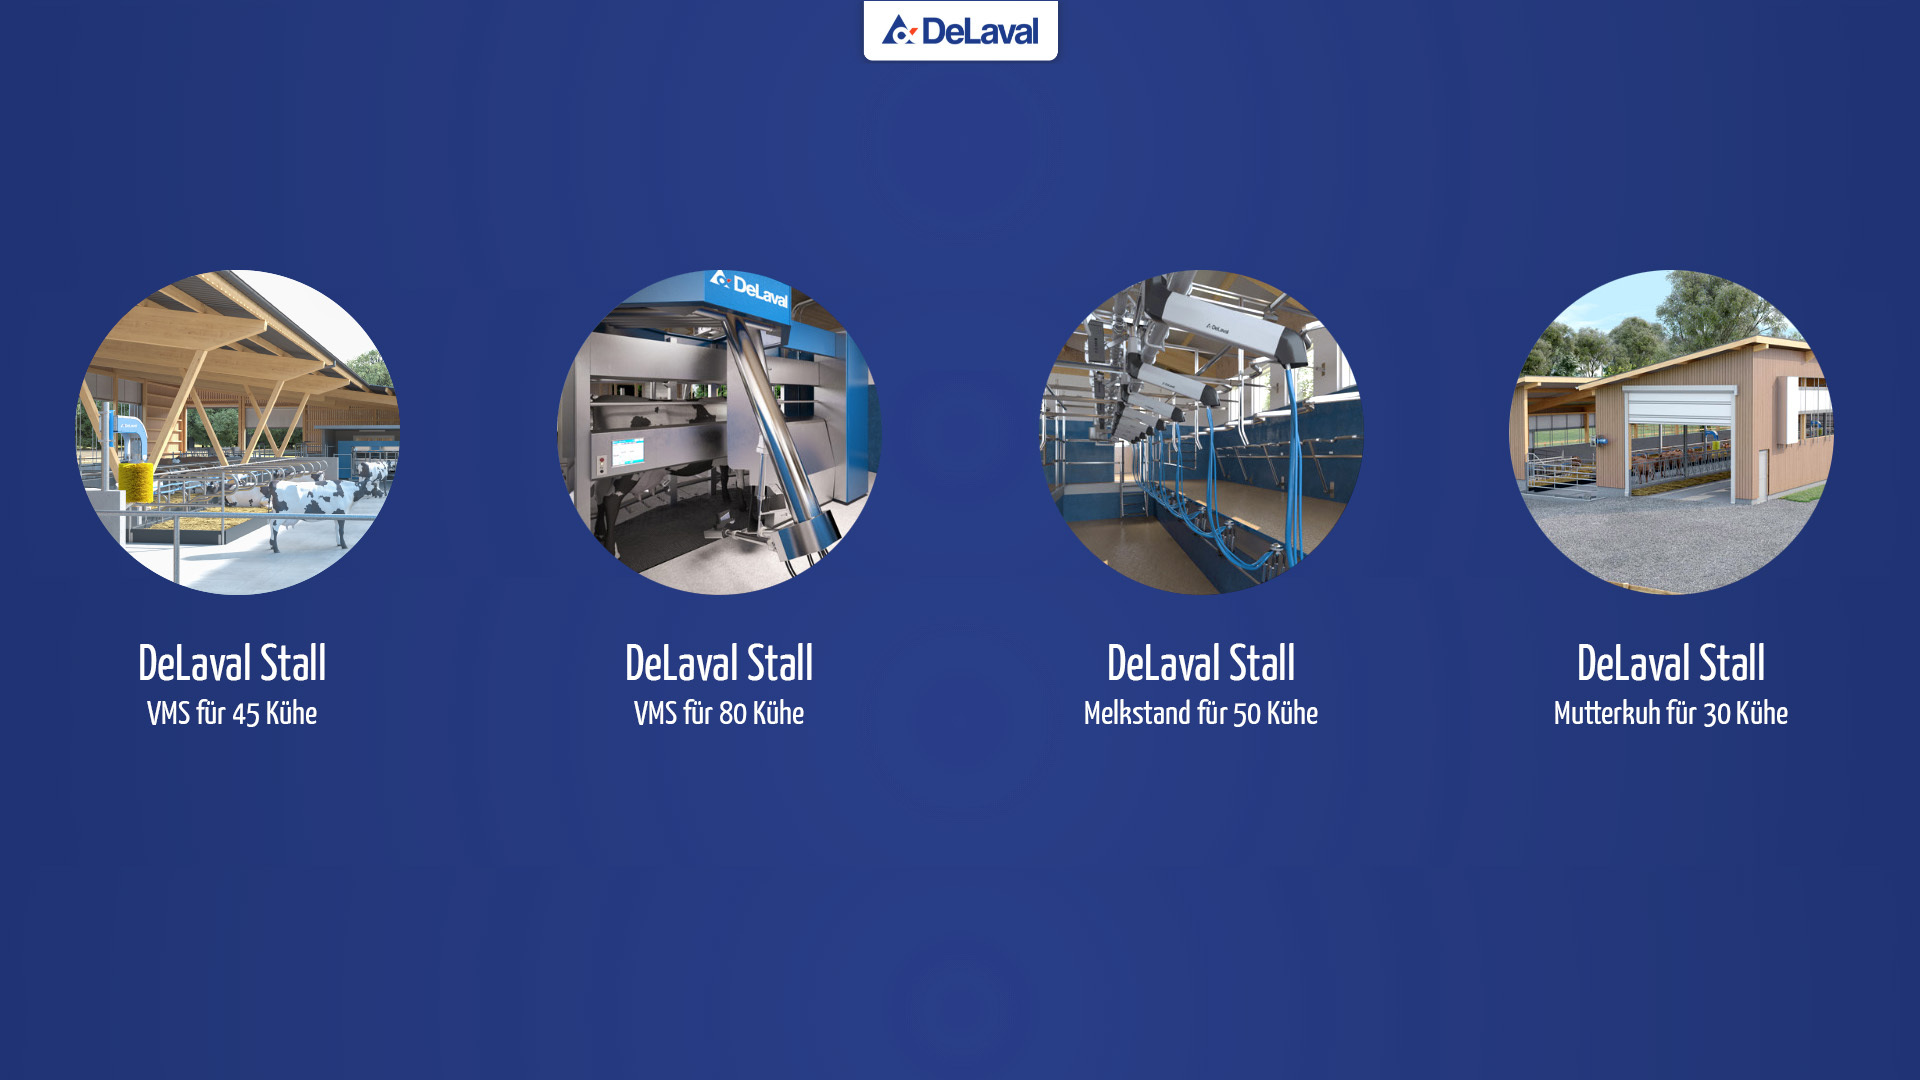 DeLaval Anwendung 2.0